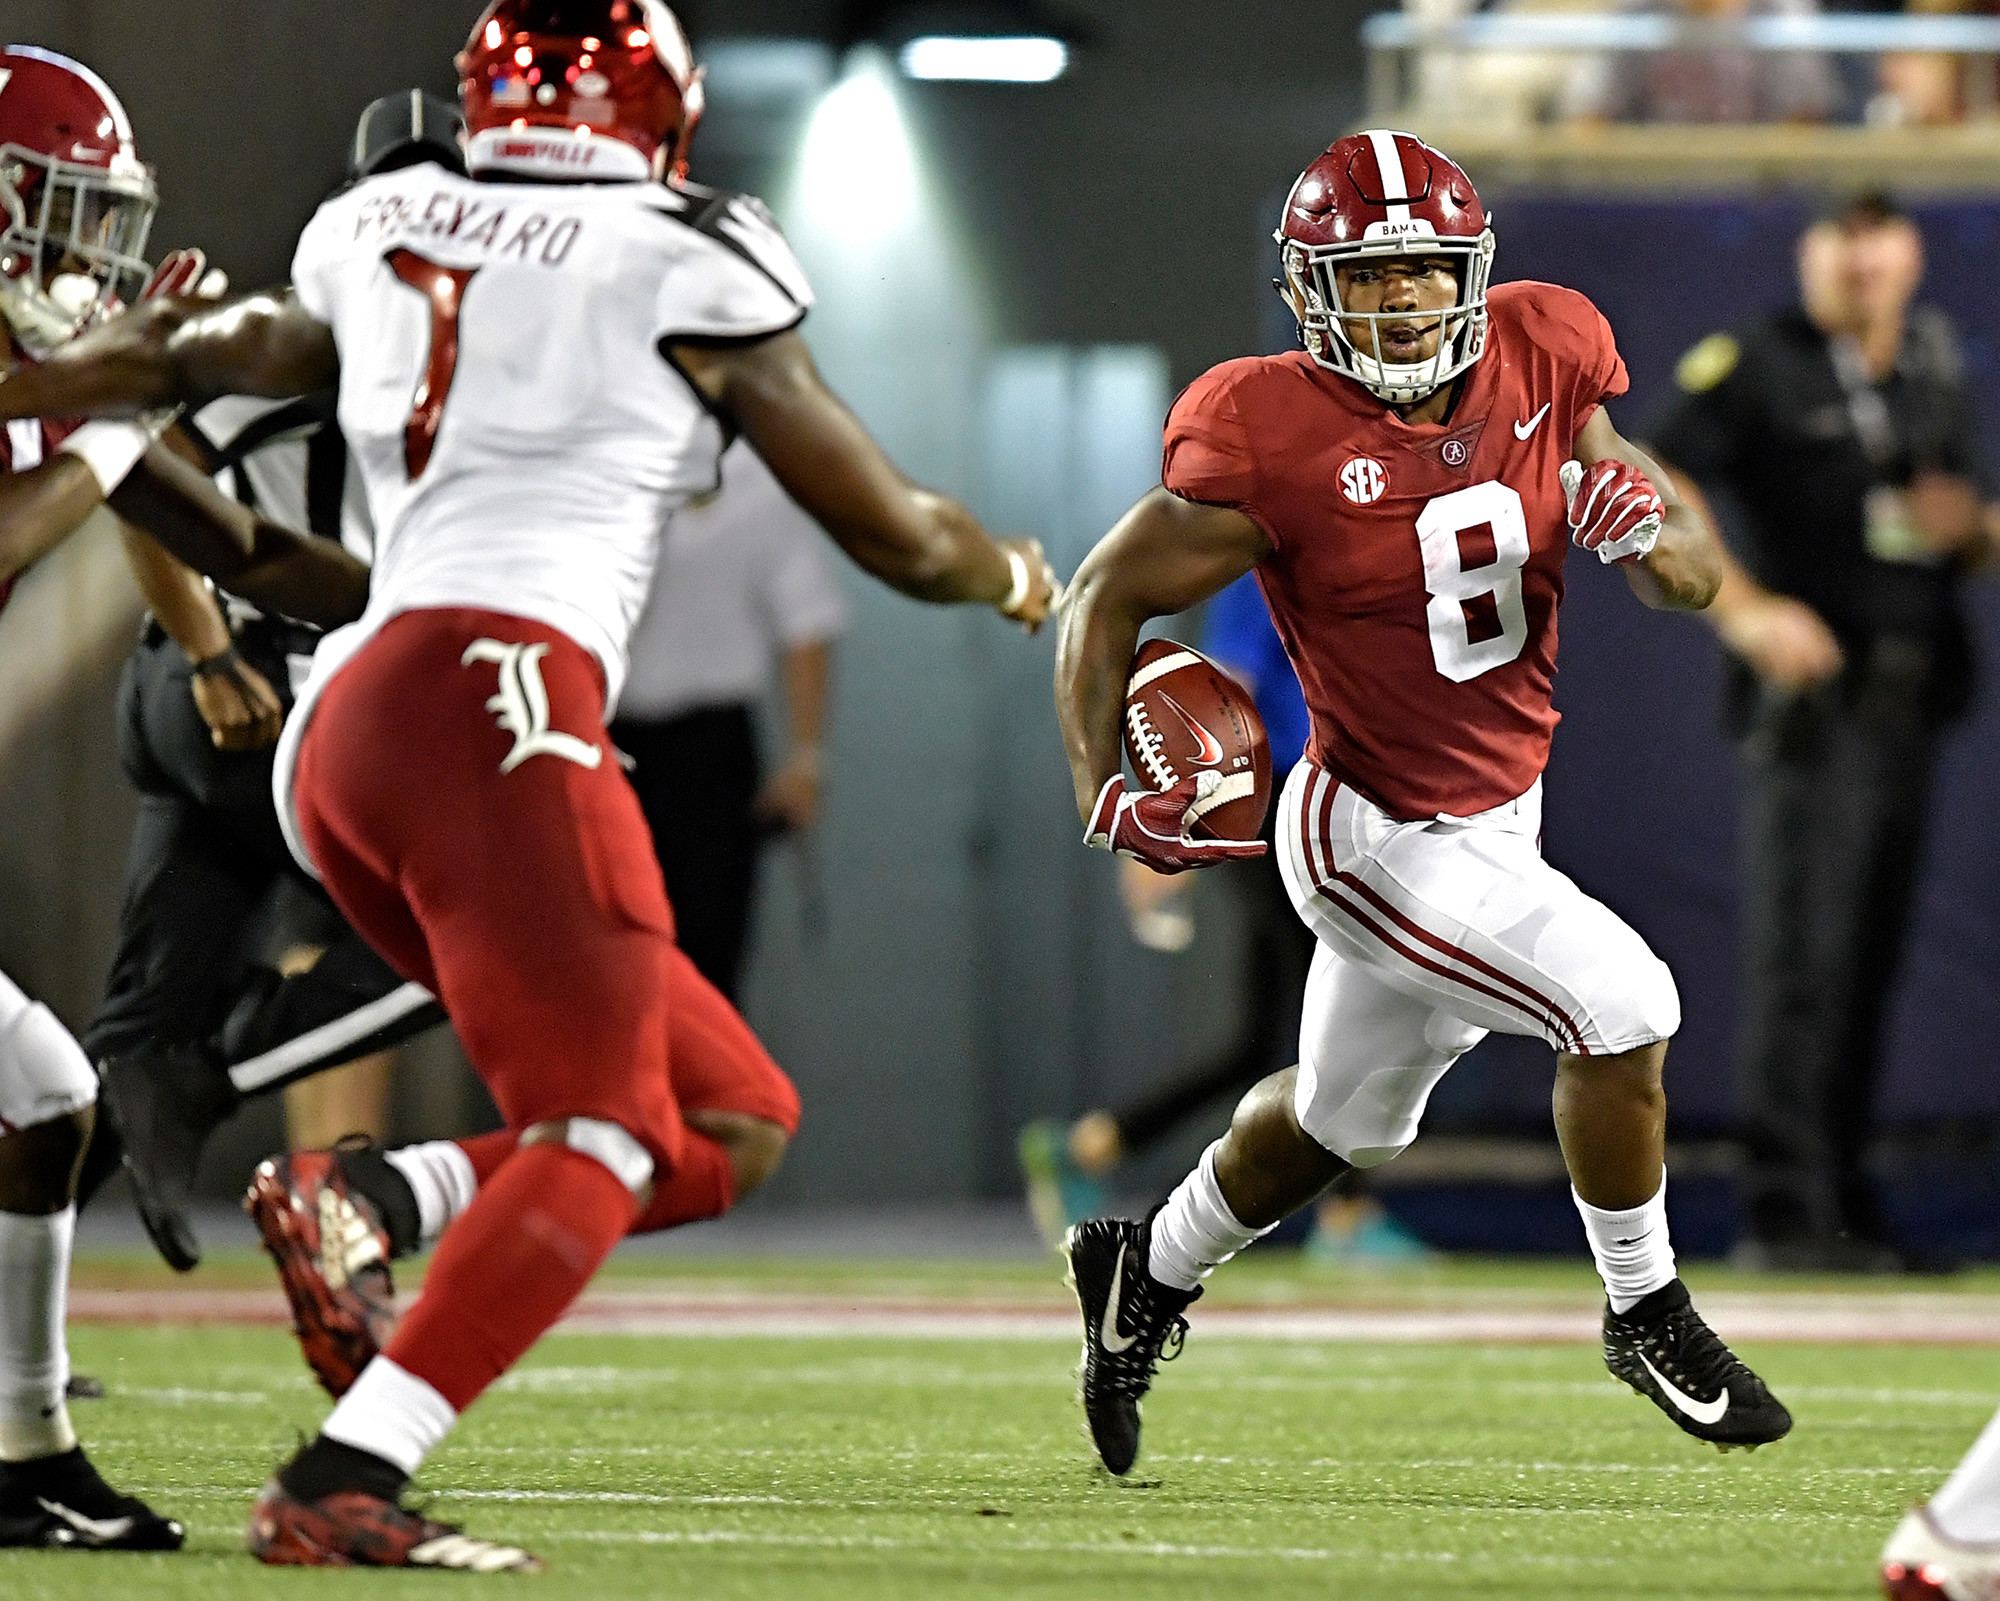 Alabama Crimson Tide running back Josh Jacobs (8) with a carry during the first half of the Camping World Kickoff football game on Saturday, Sept. 1, 2018, in Orlando, Fla. (Photo by Lee Walls)